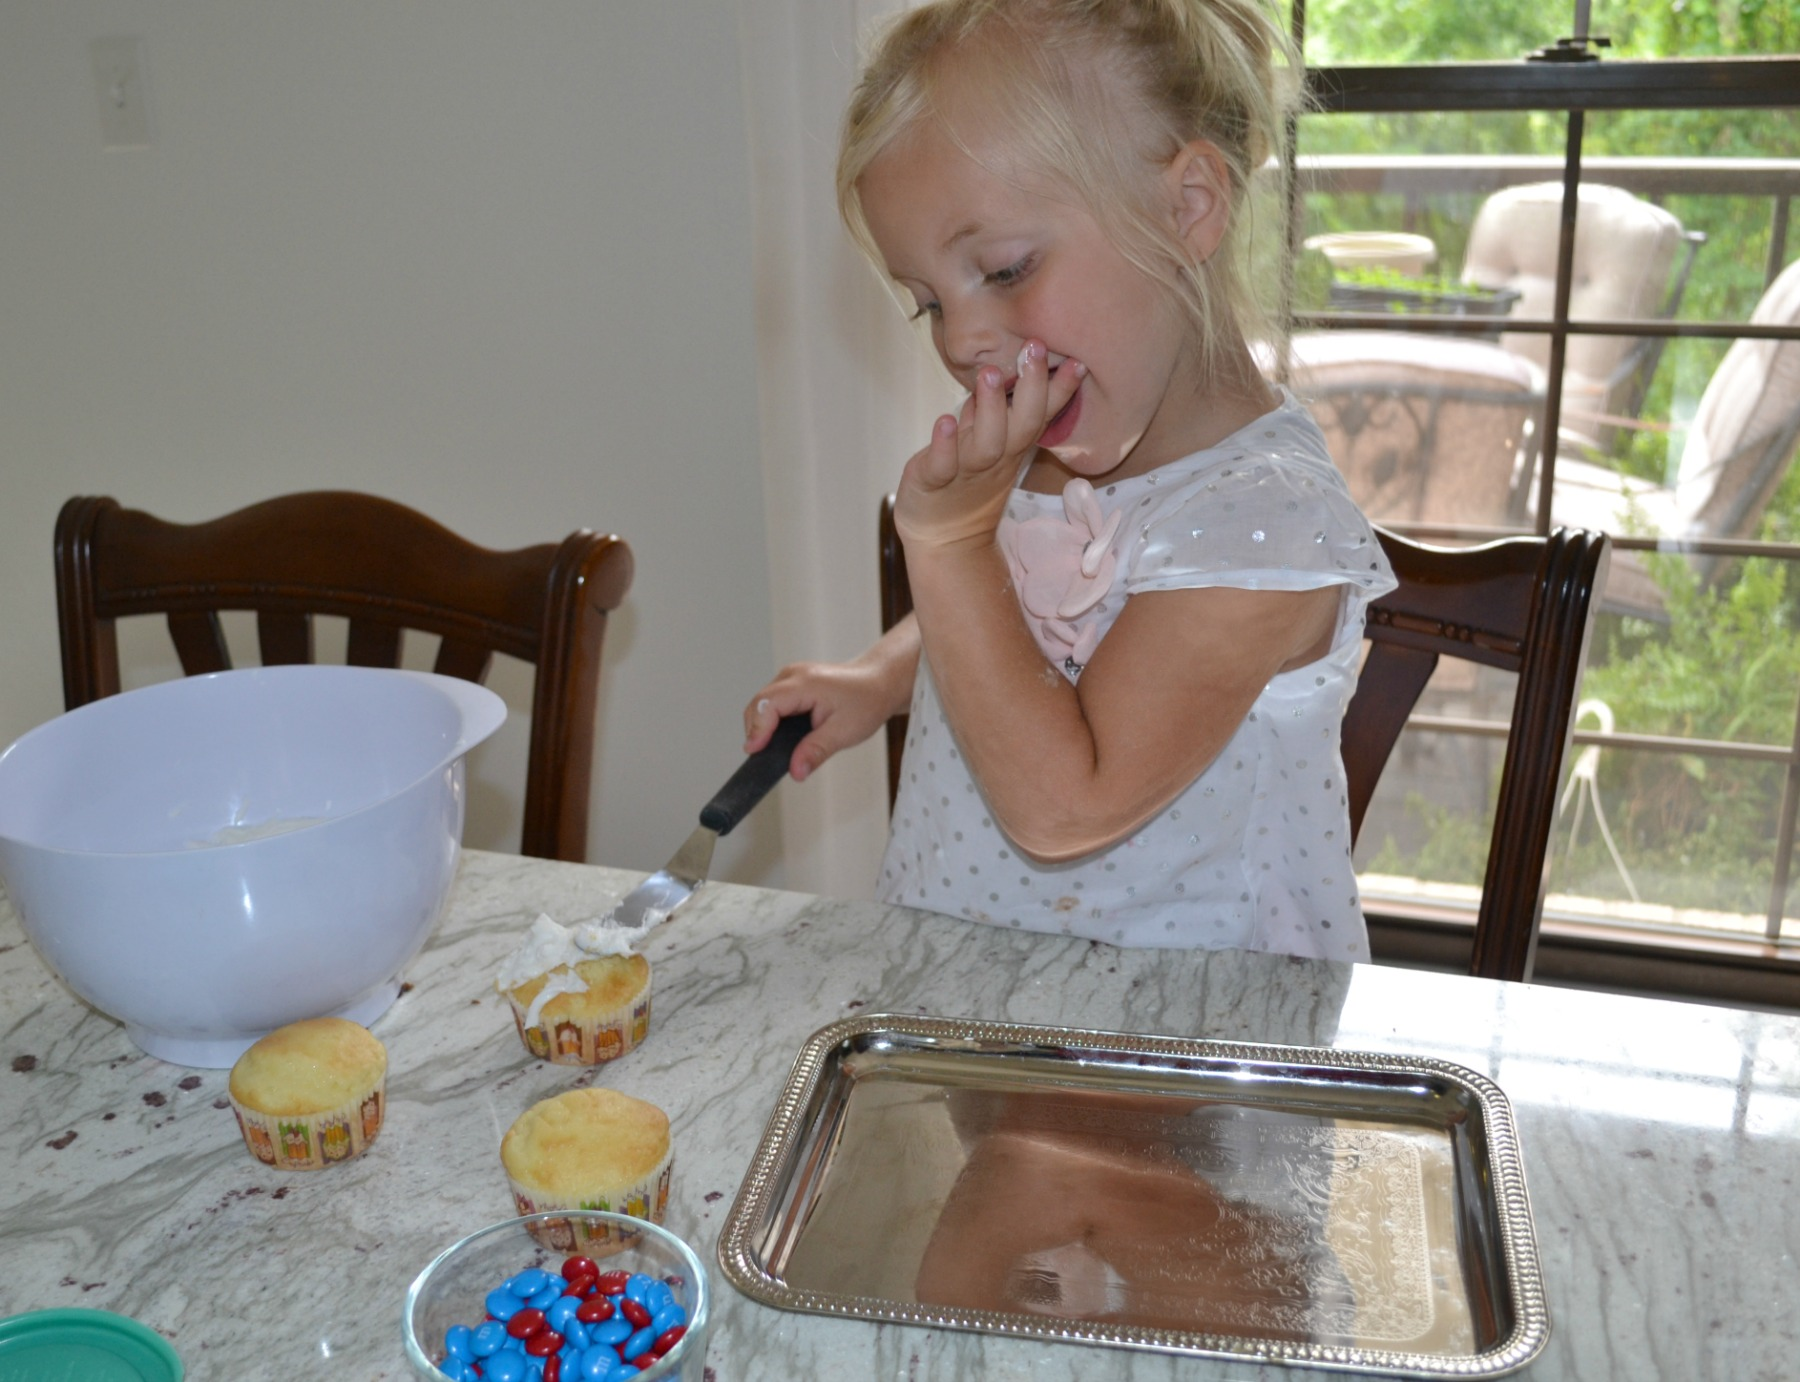 decorating cupcakes, kids cooking